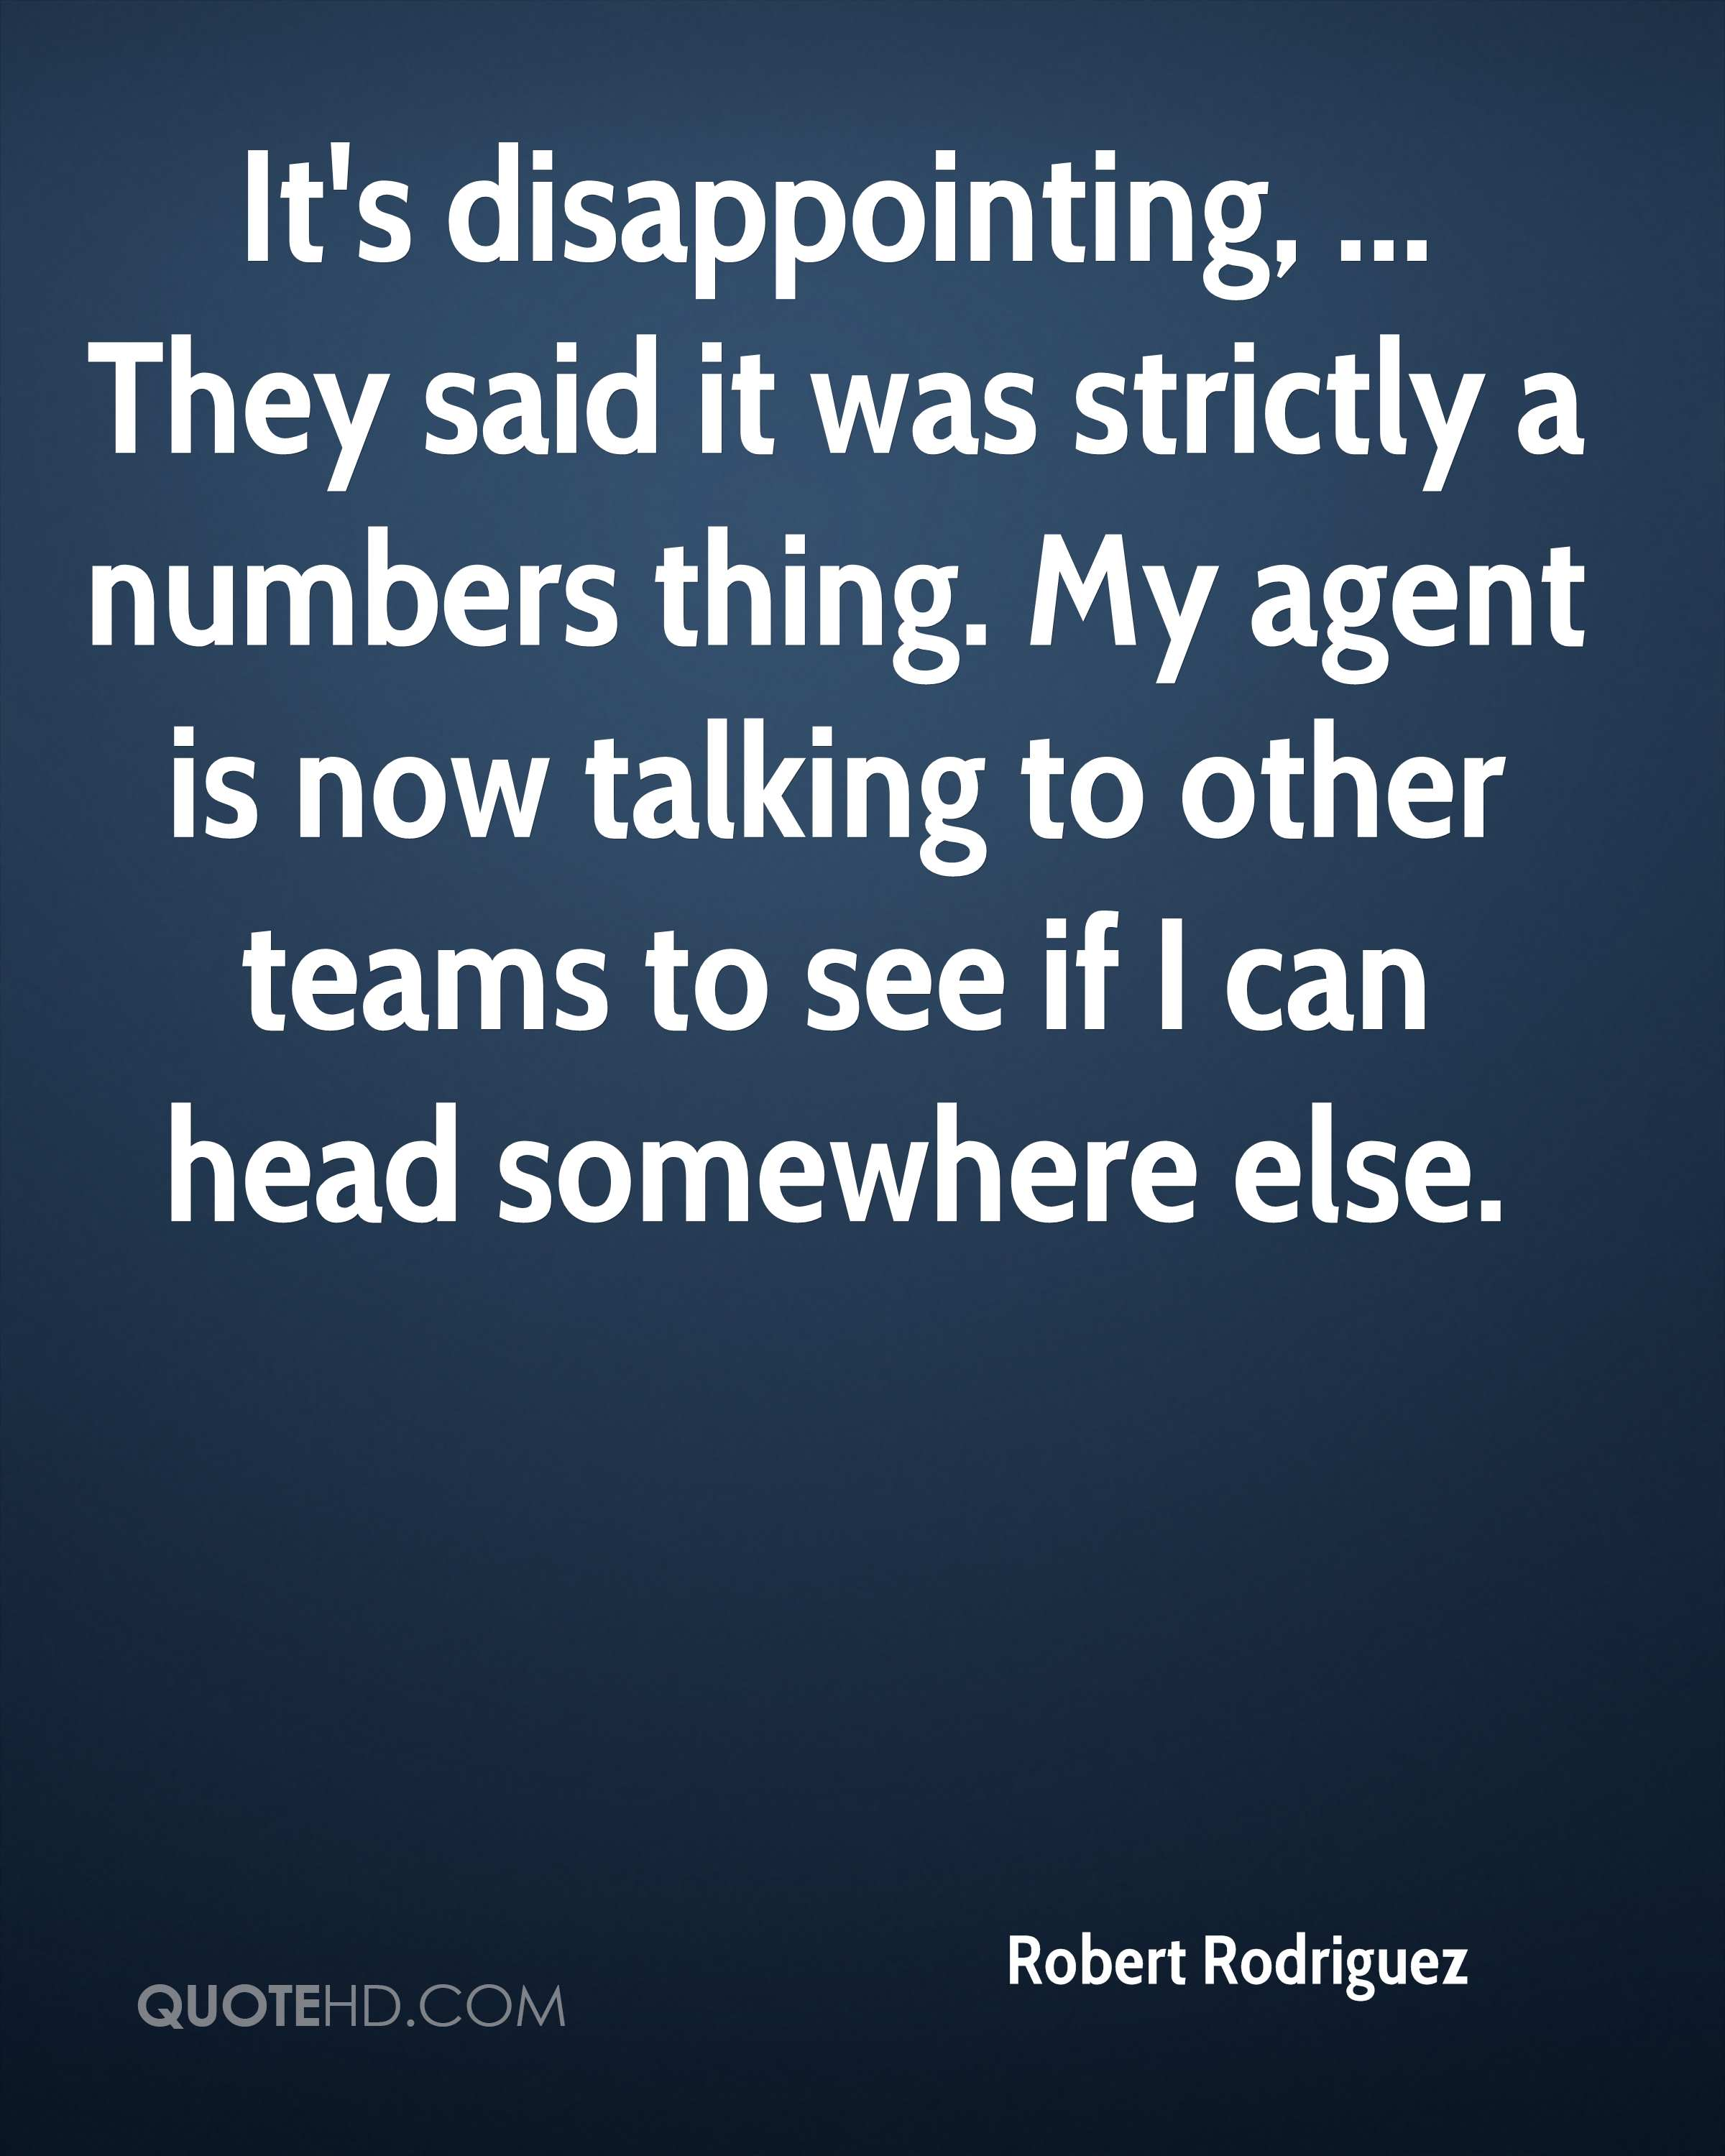 It's disappointing, ... They said it was strictly a numbers thing. My agent is now talking to other teams to see if I can head somewhere else.